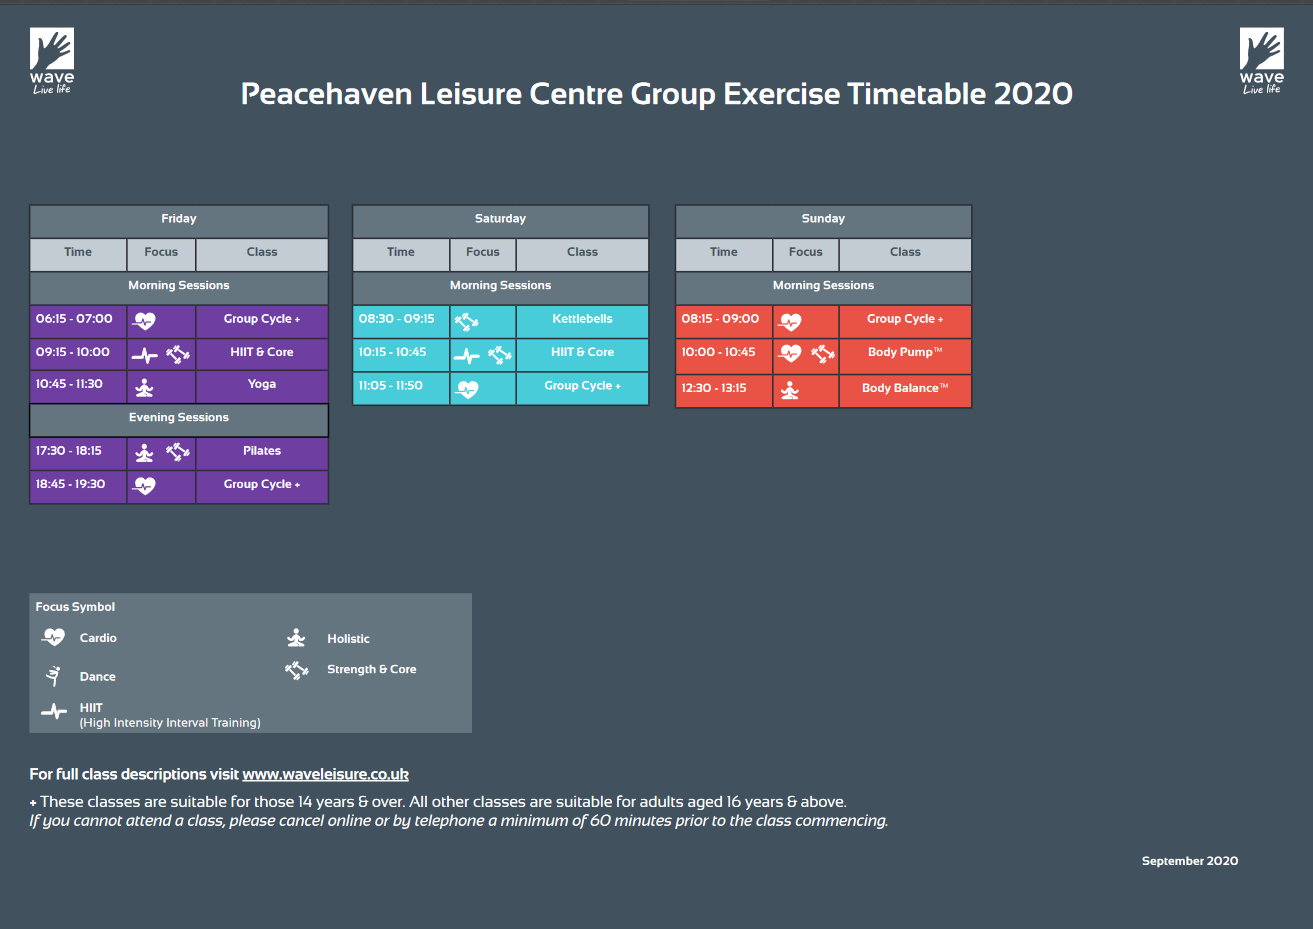 Peacehaven leisure centre timetable Friday to Sunday. PDF available.